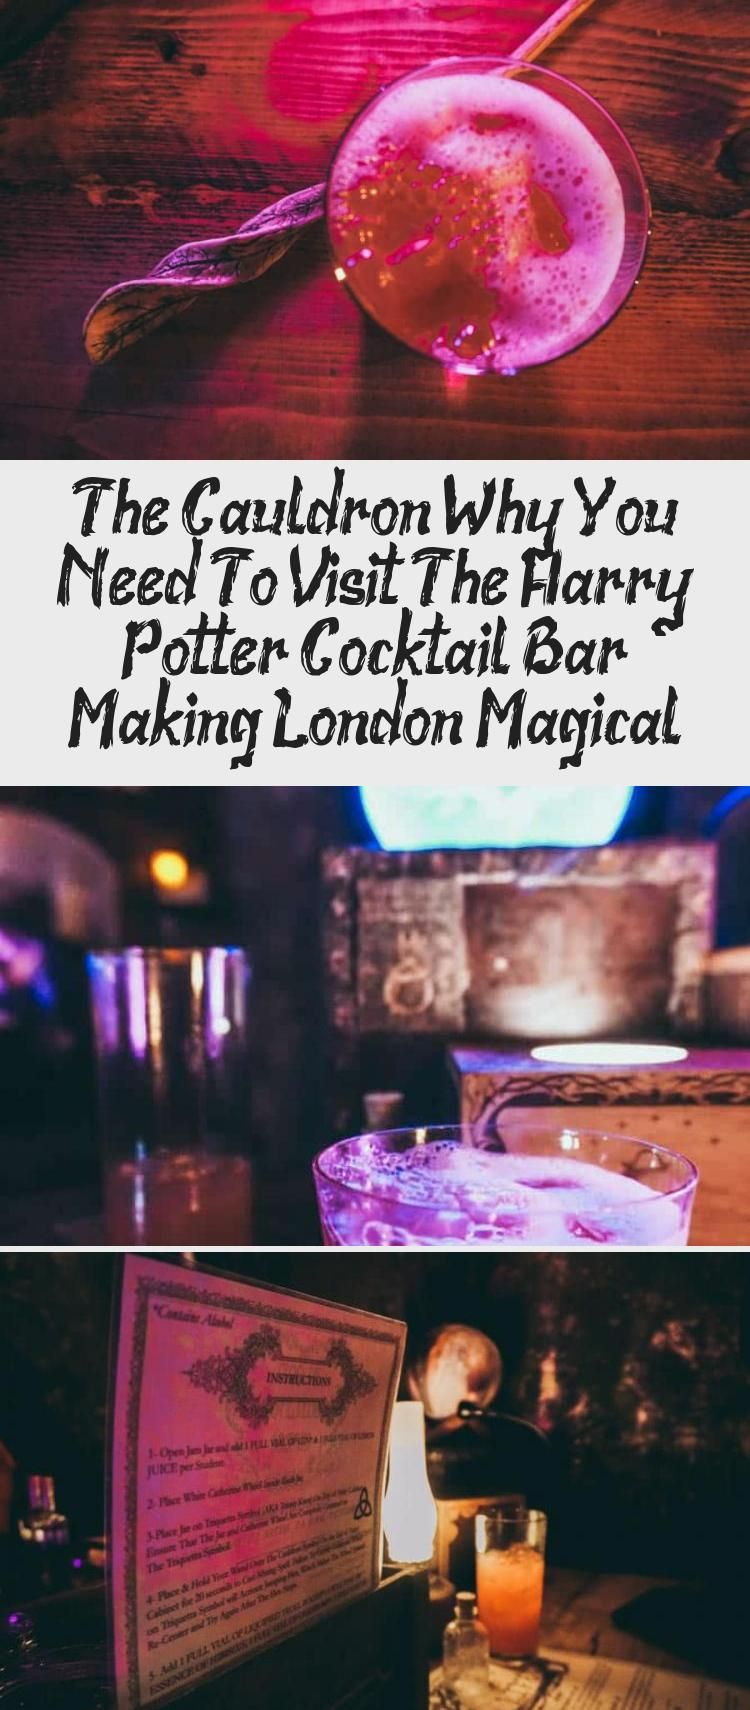 Do You Love Harry Potter You Simply Have To Visit The Cauldron London S Harry Potter Themed Cocktail Bar It S Harry Potter Cocktails Cocktail Bar Cocktails